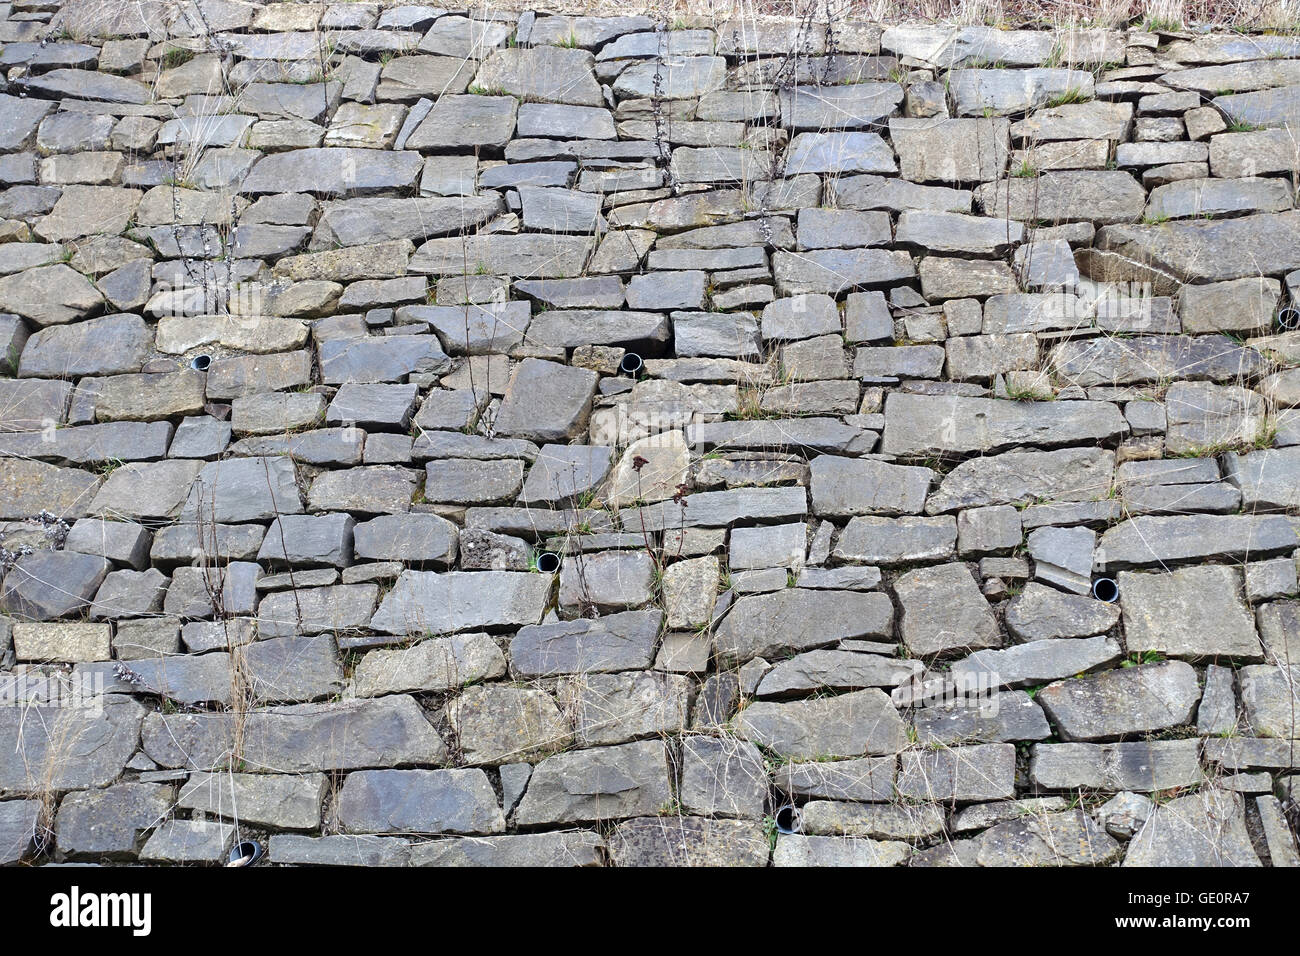 Die Mauer - The Wall - Stock Image